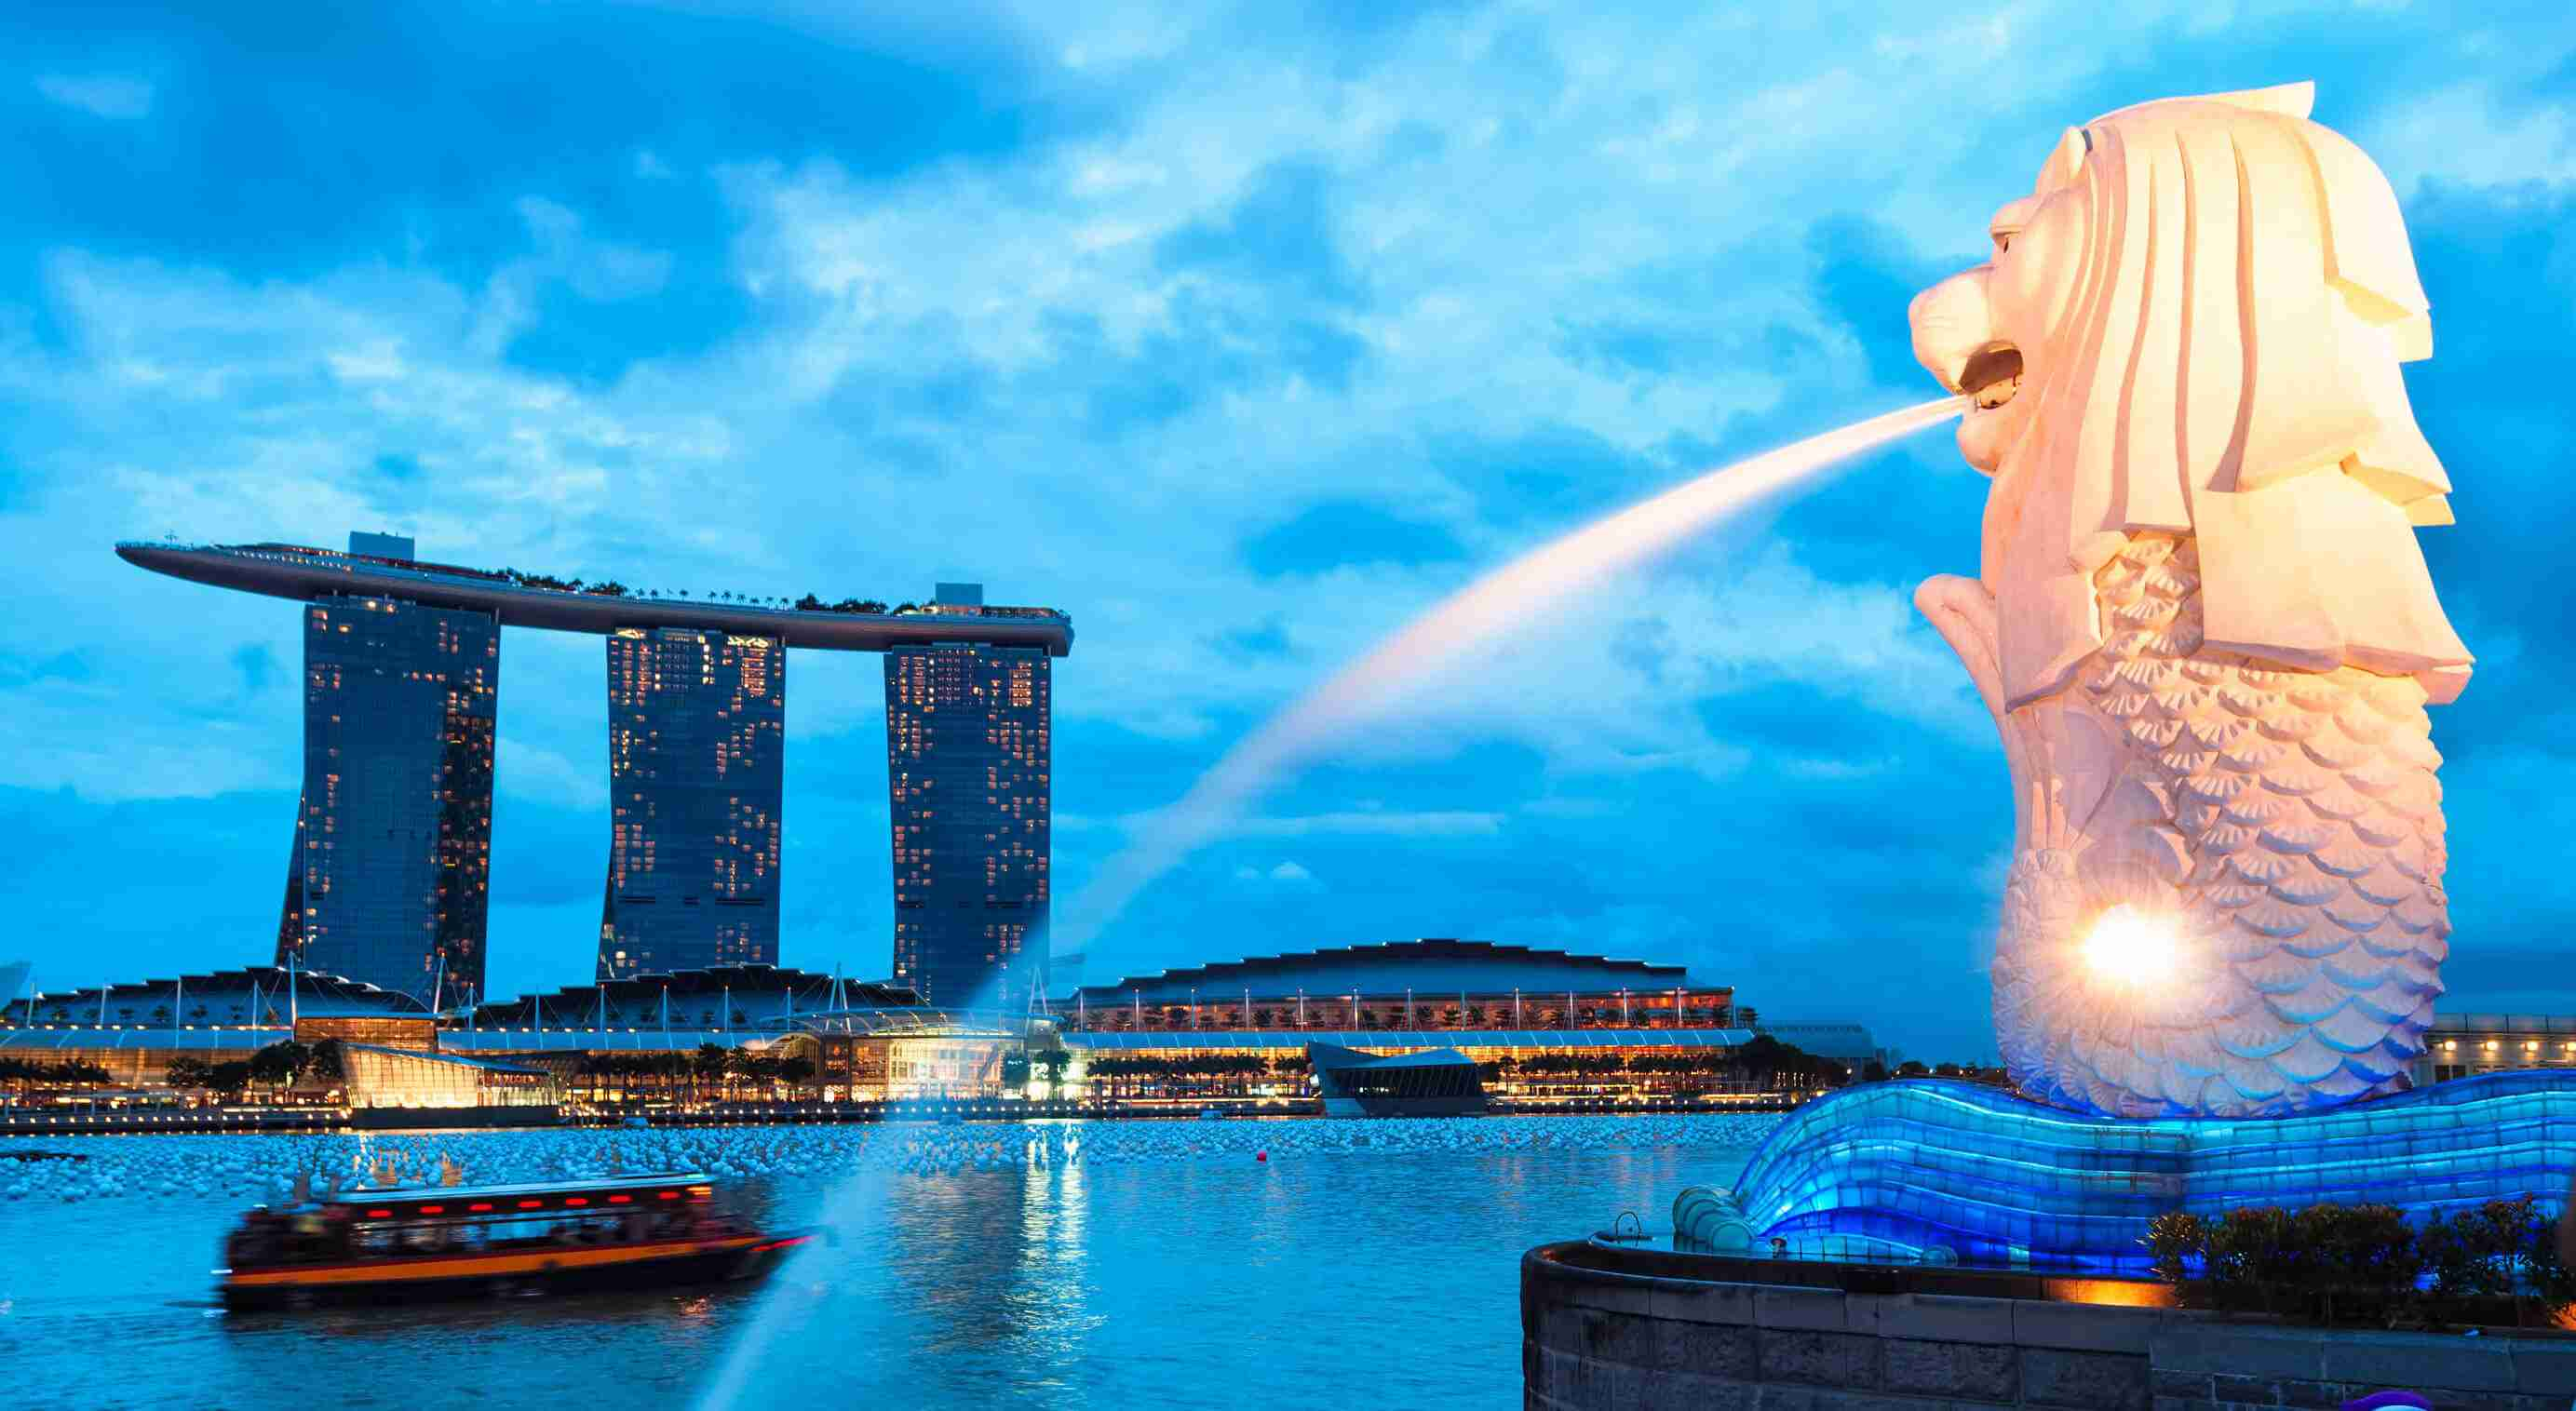 Sights And Scenes Of Beautiful Singapore Hd Wallpaper 2 2767x1516